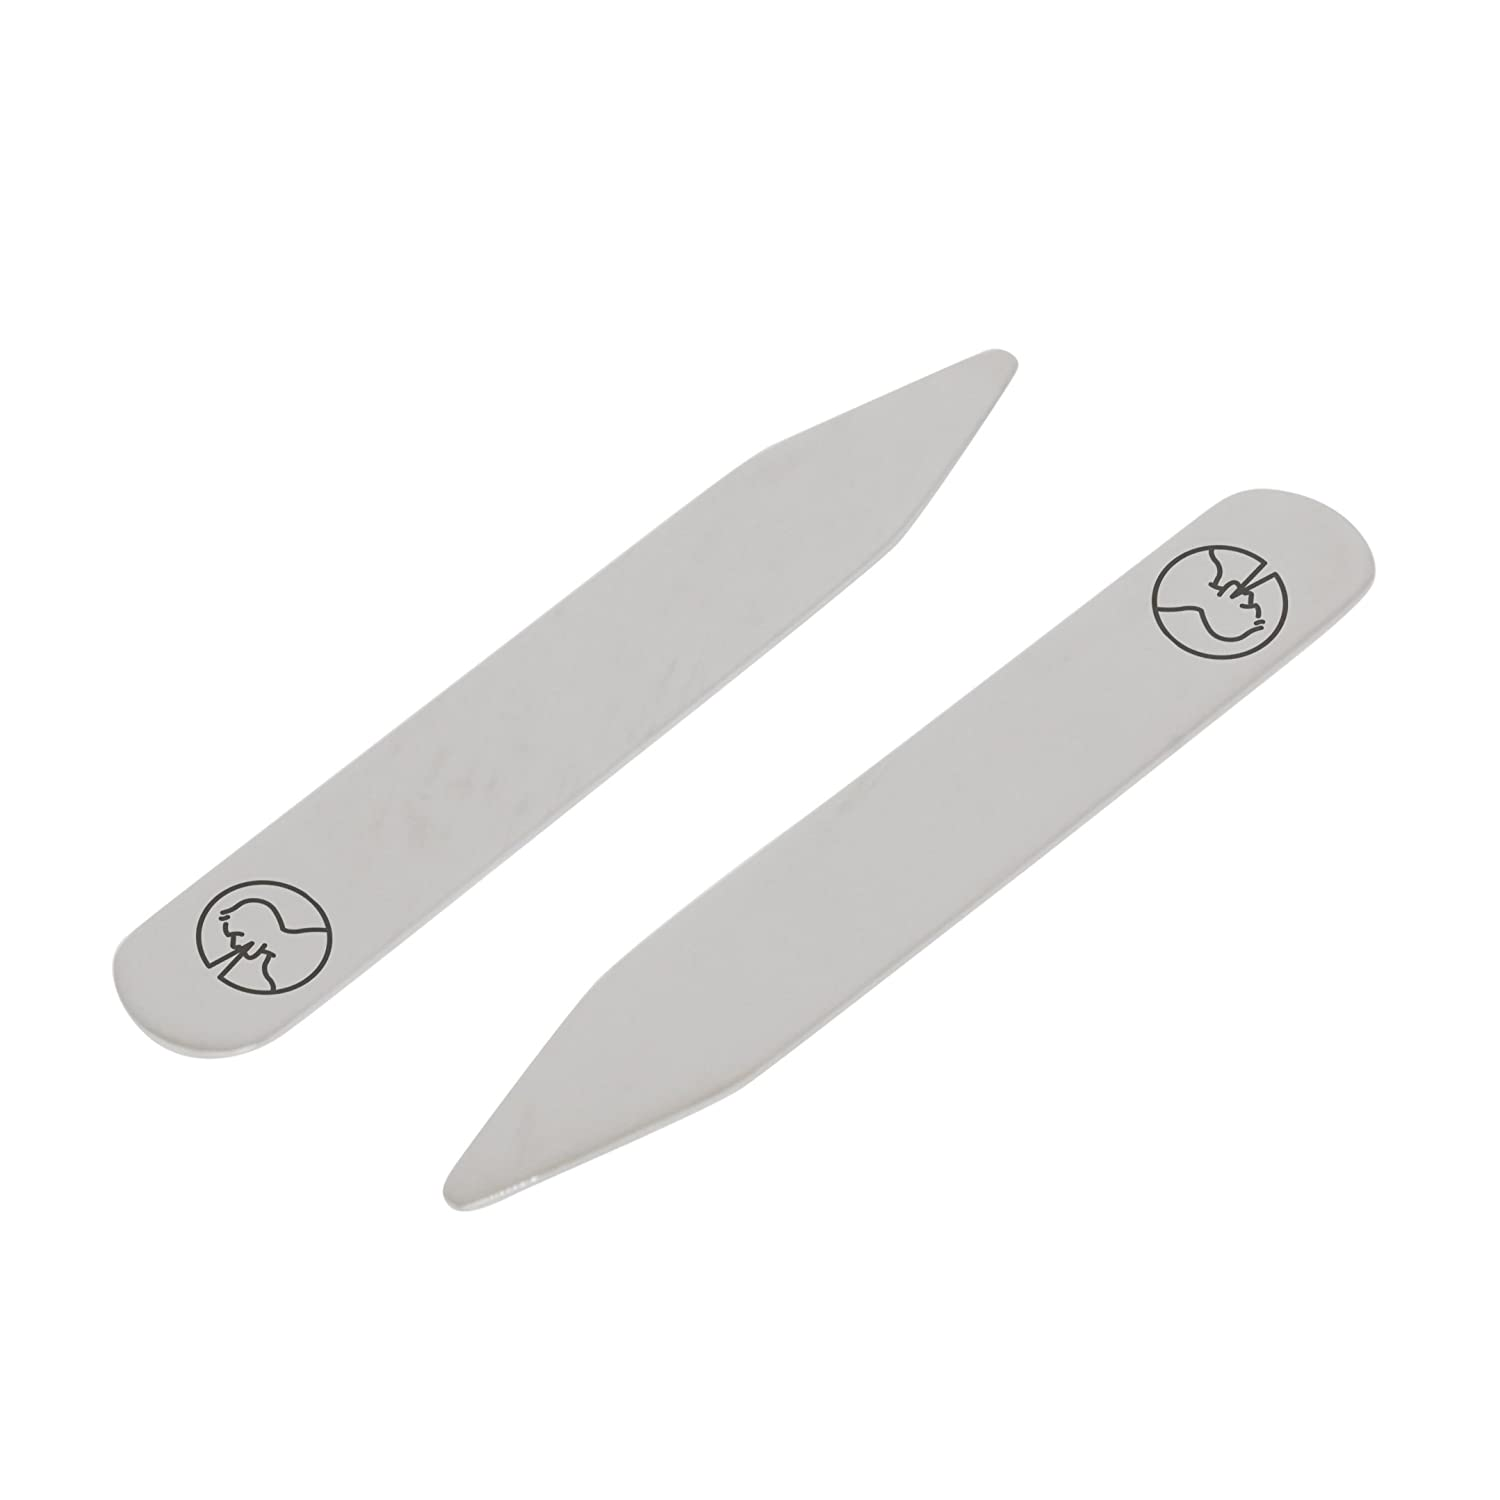 MODERN GOODS SHOP Stainless Steel Collar Stays With Laser Engraved Nobel Peace Prize Design Made In USA 2.5 Inch Metal Collar Stiffeners